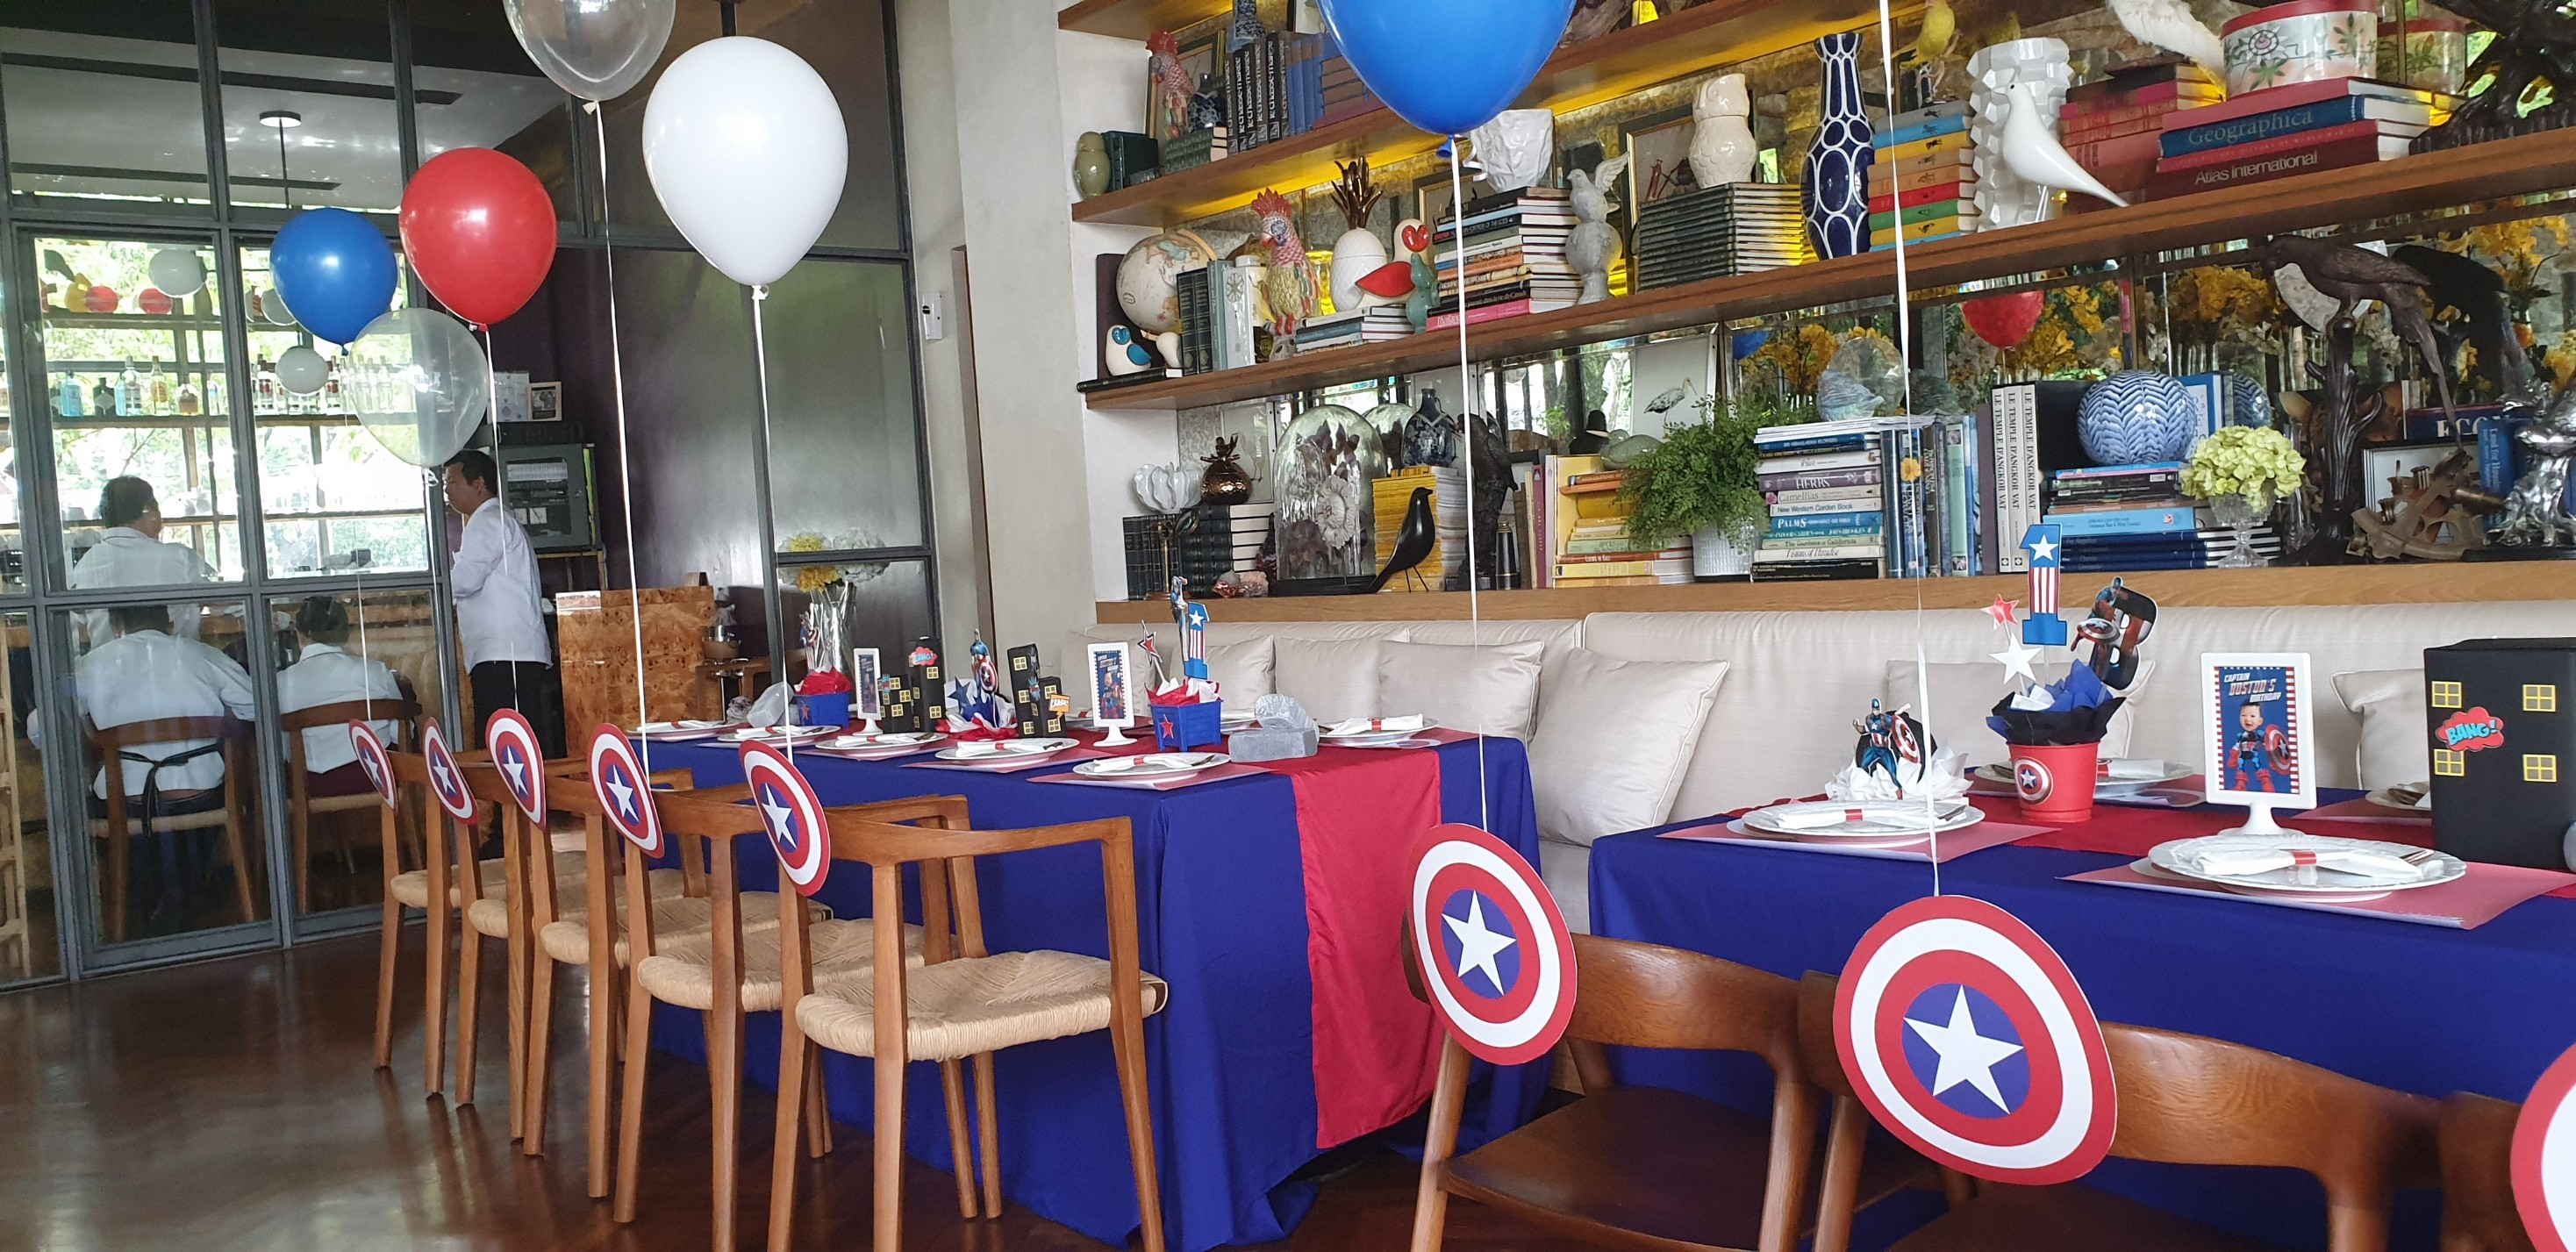 Celebrating your kids' birthday party in heroic way with